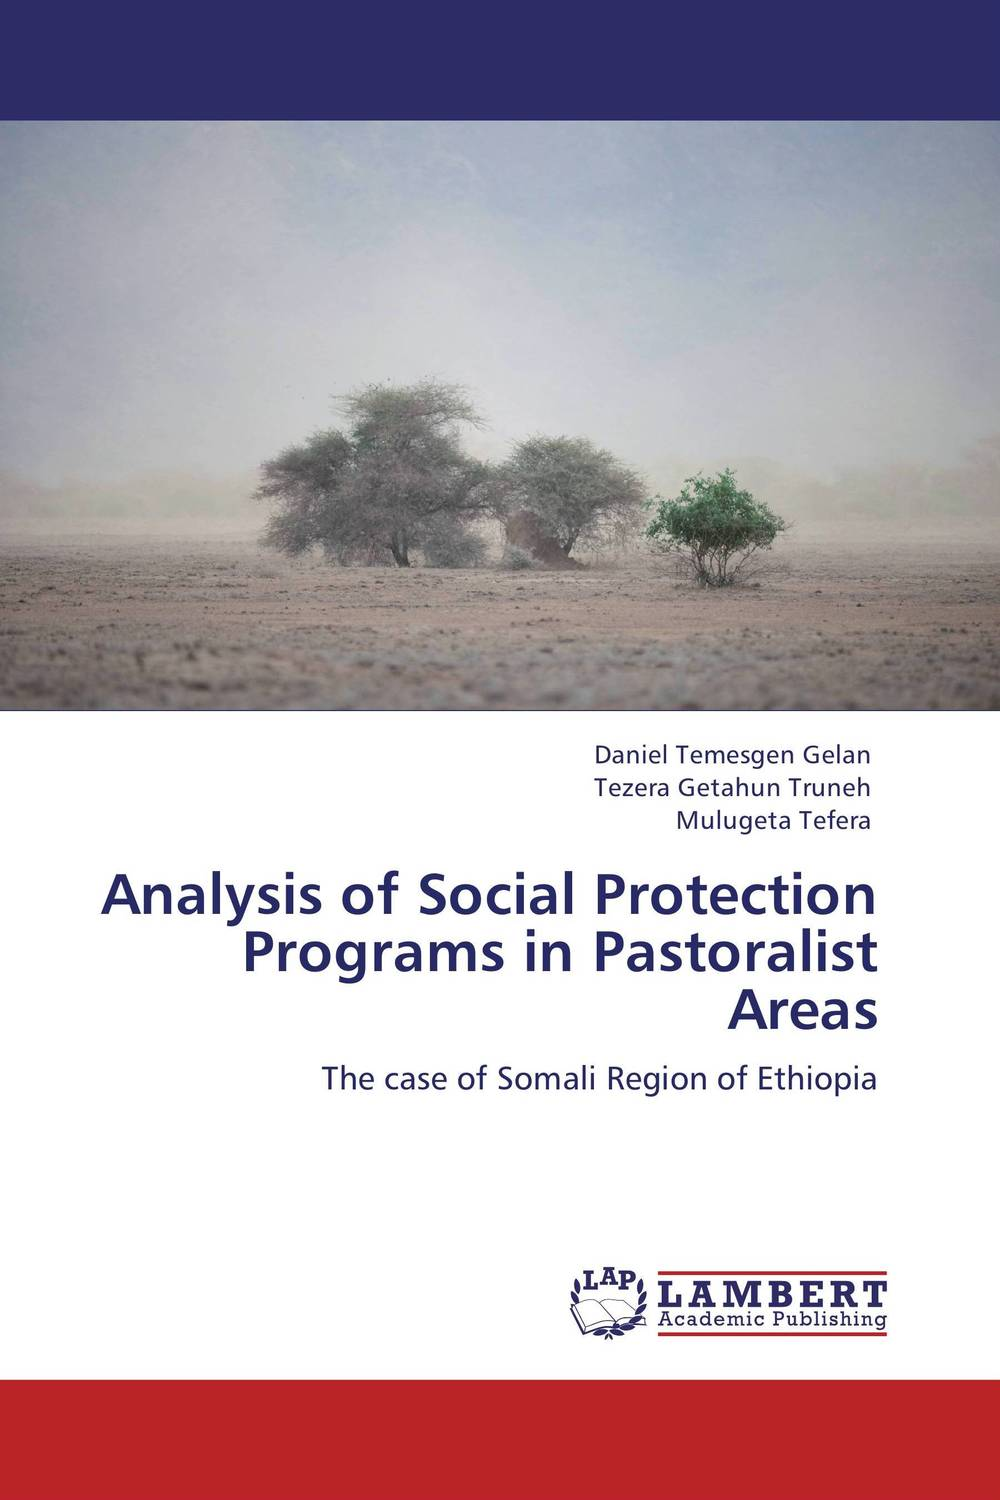 Analysis of Social Protection Programs in  Pastoralist Areas the viabilities of musyarakah as social protection mechanism